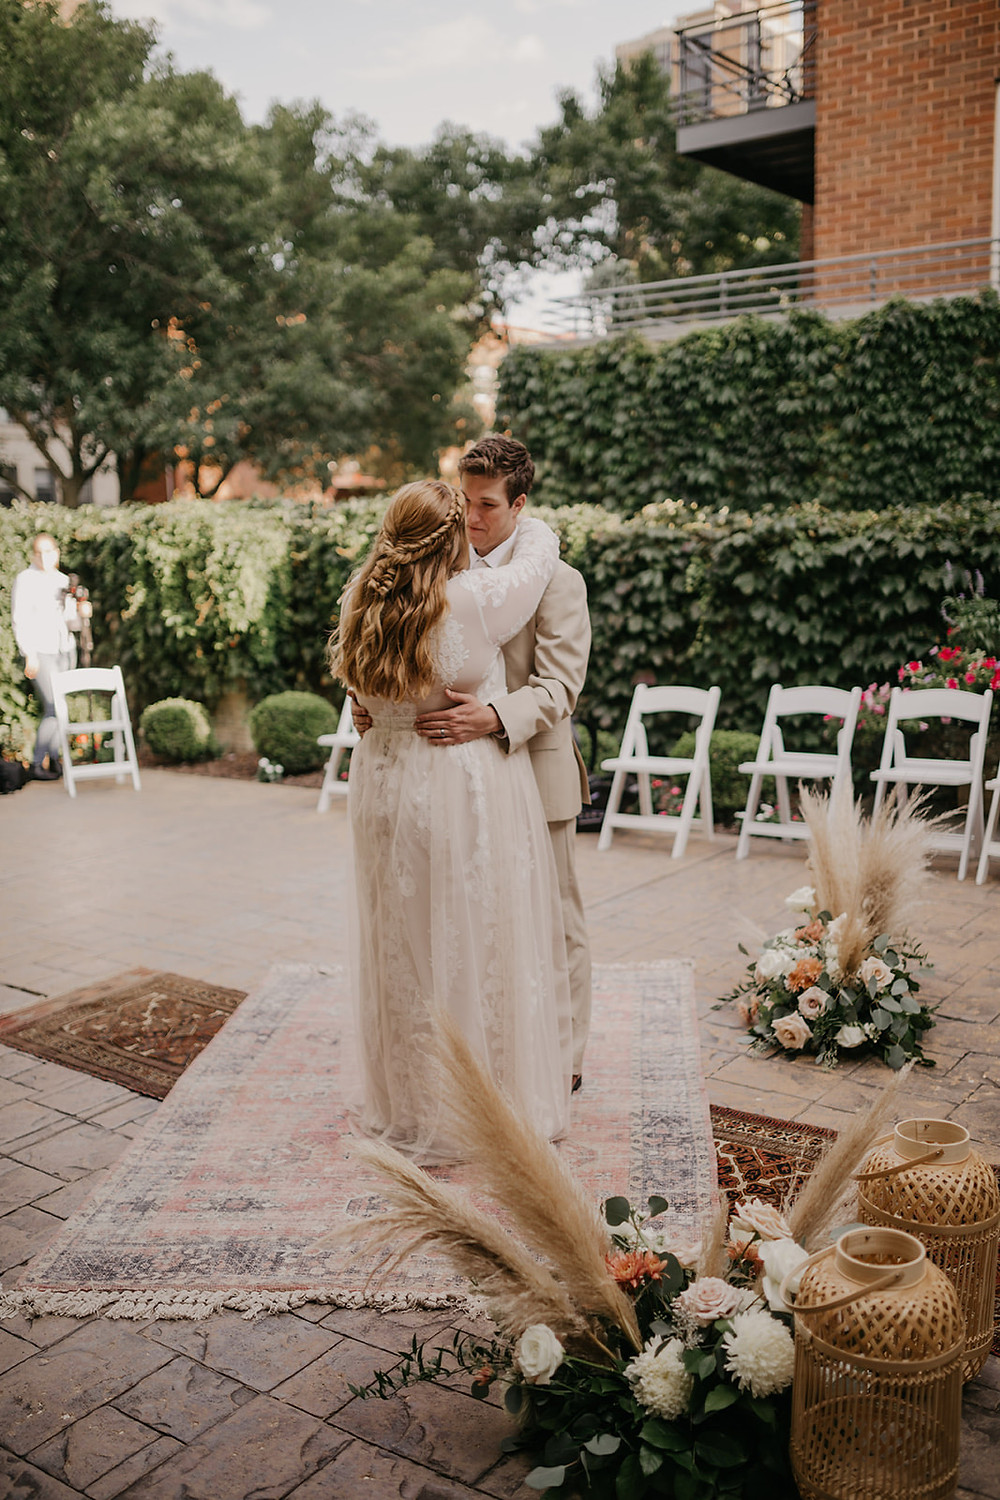 First dance, surrounded by all the Boho decor elements that made this wedding day perfect.